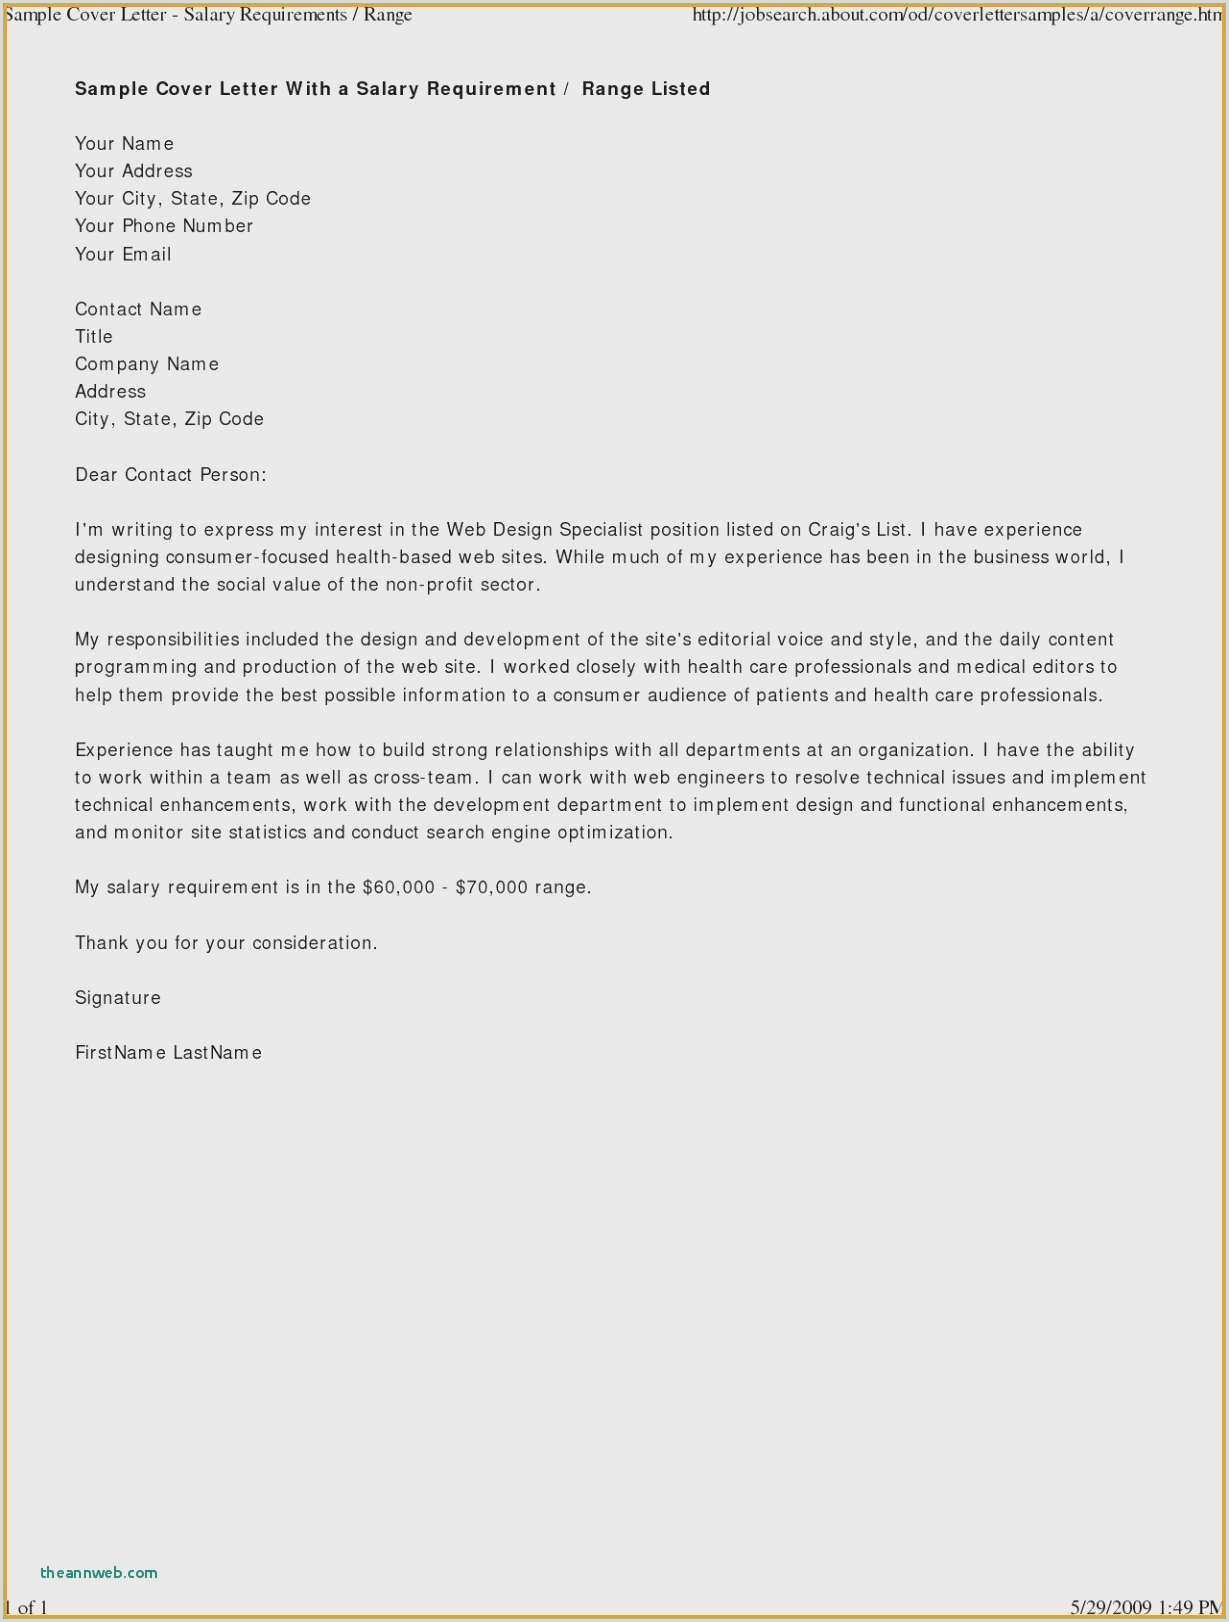 Pharmacist Cover Letter Examples Pharmacist Cover Letter Examples Sample Pharmacist Cover